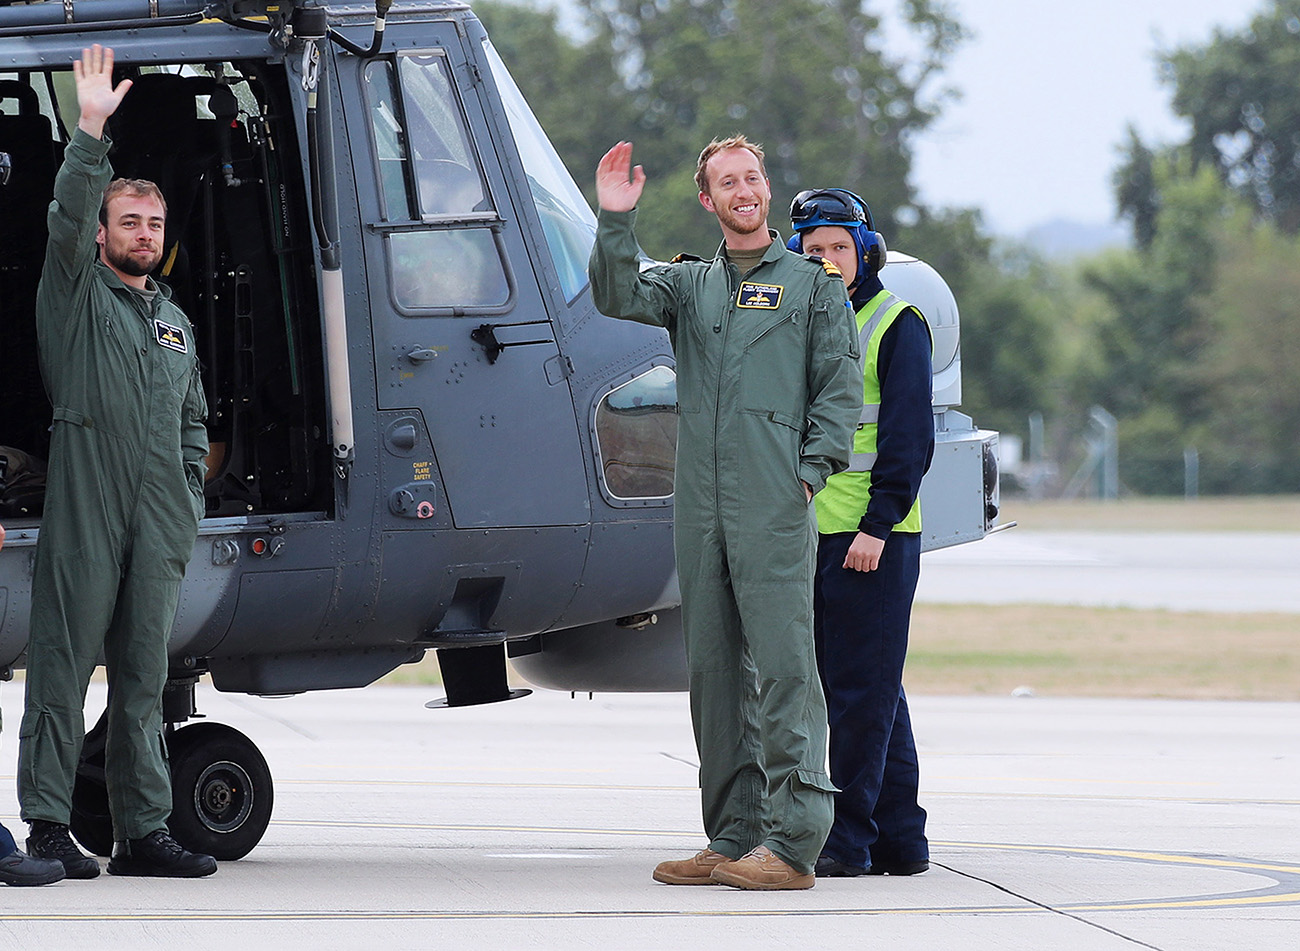 Wildcat helicopter returns to Yeovilton after groundbreaking deployment